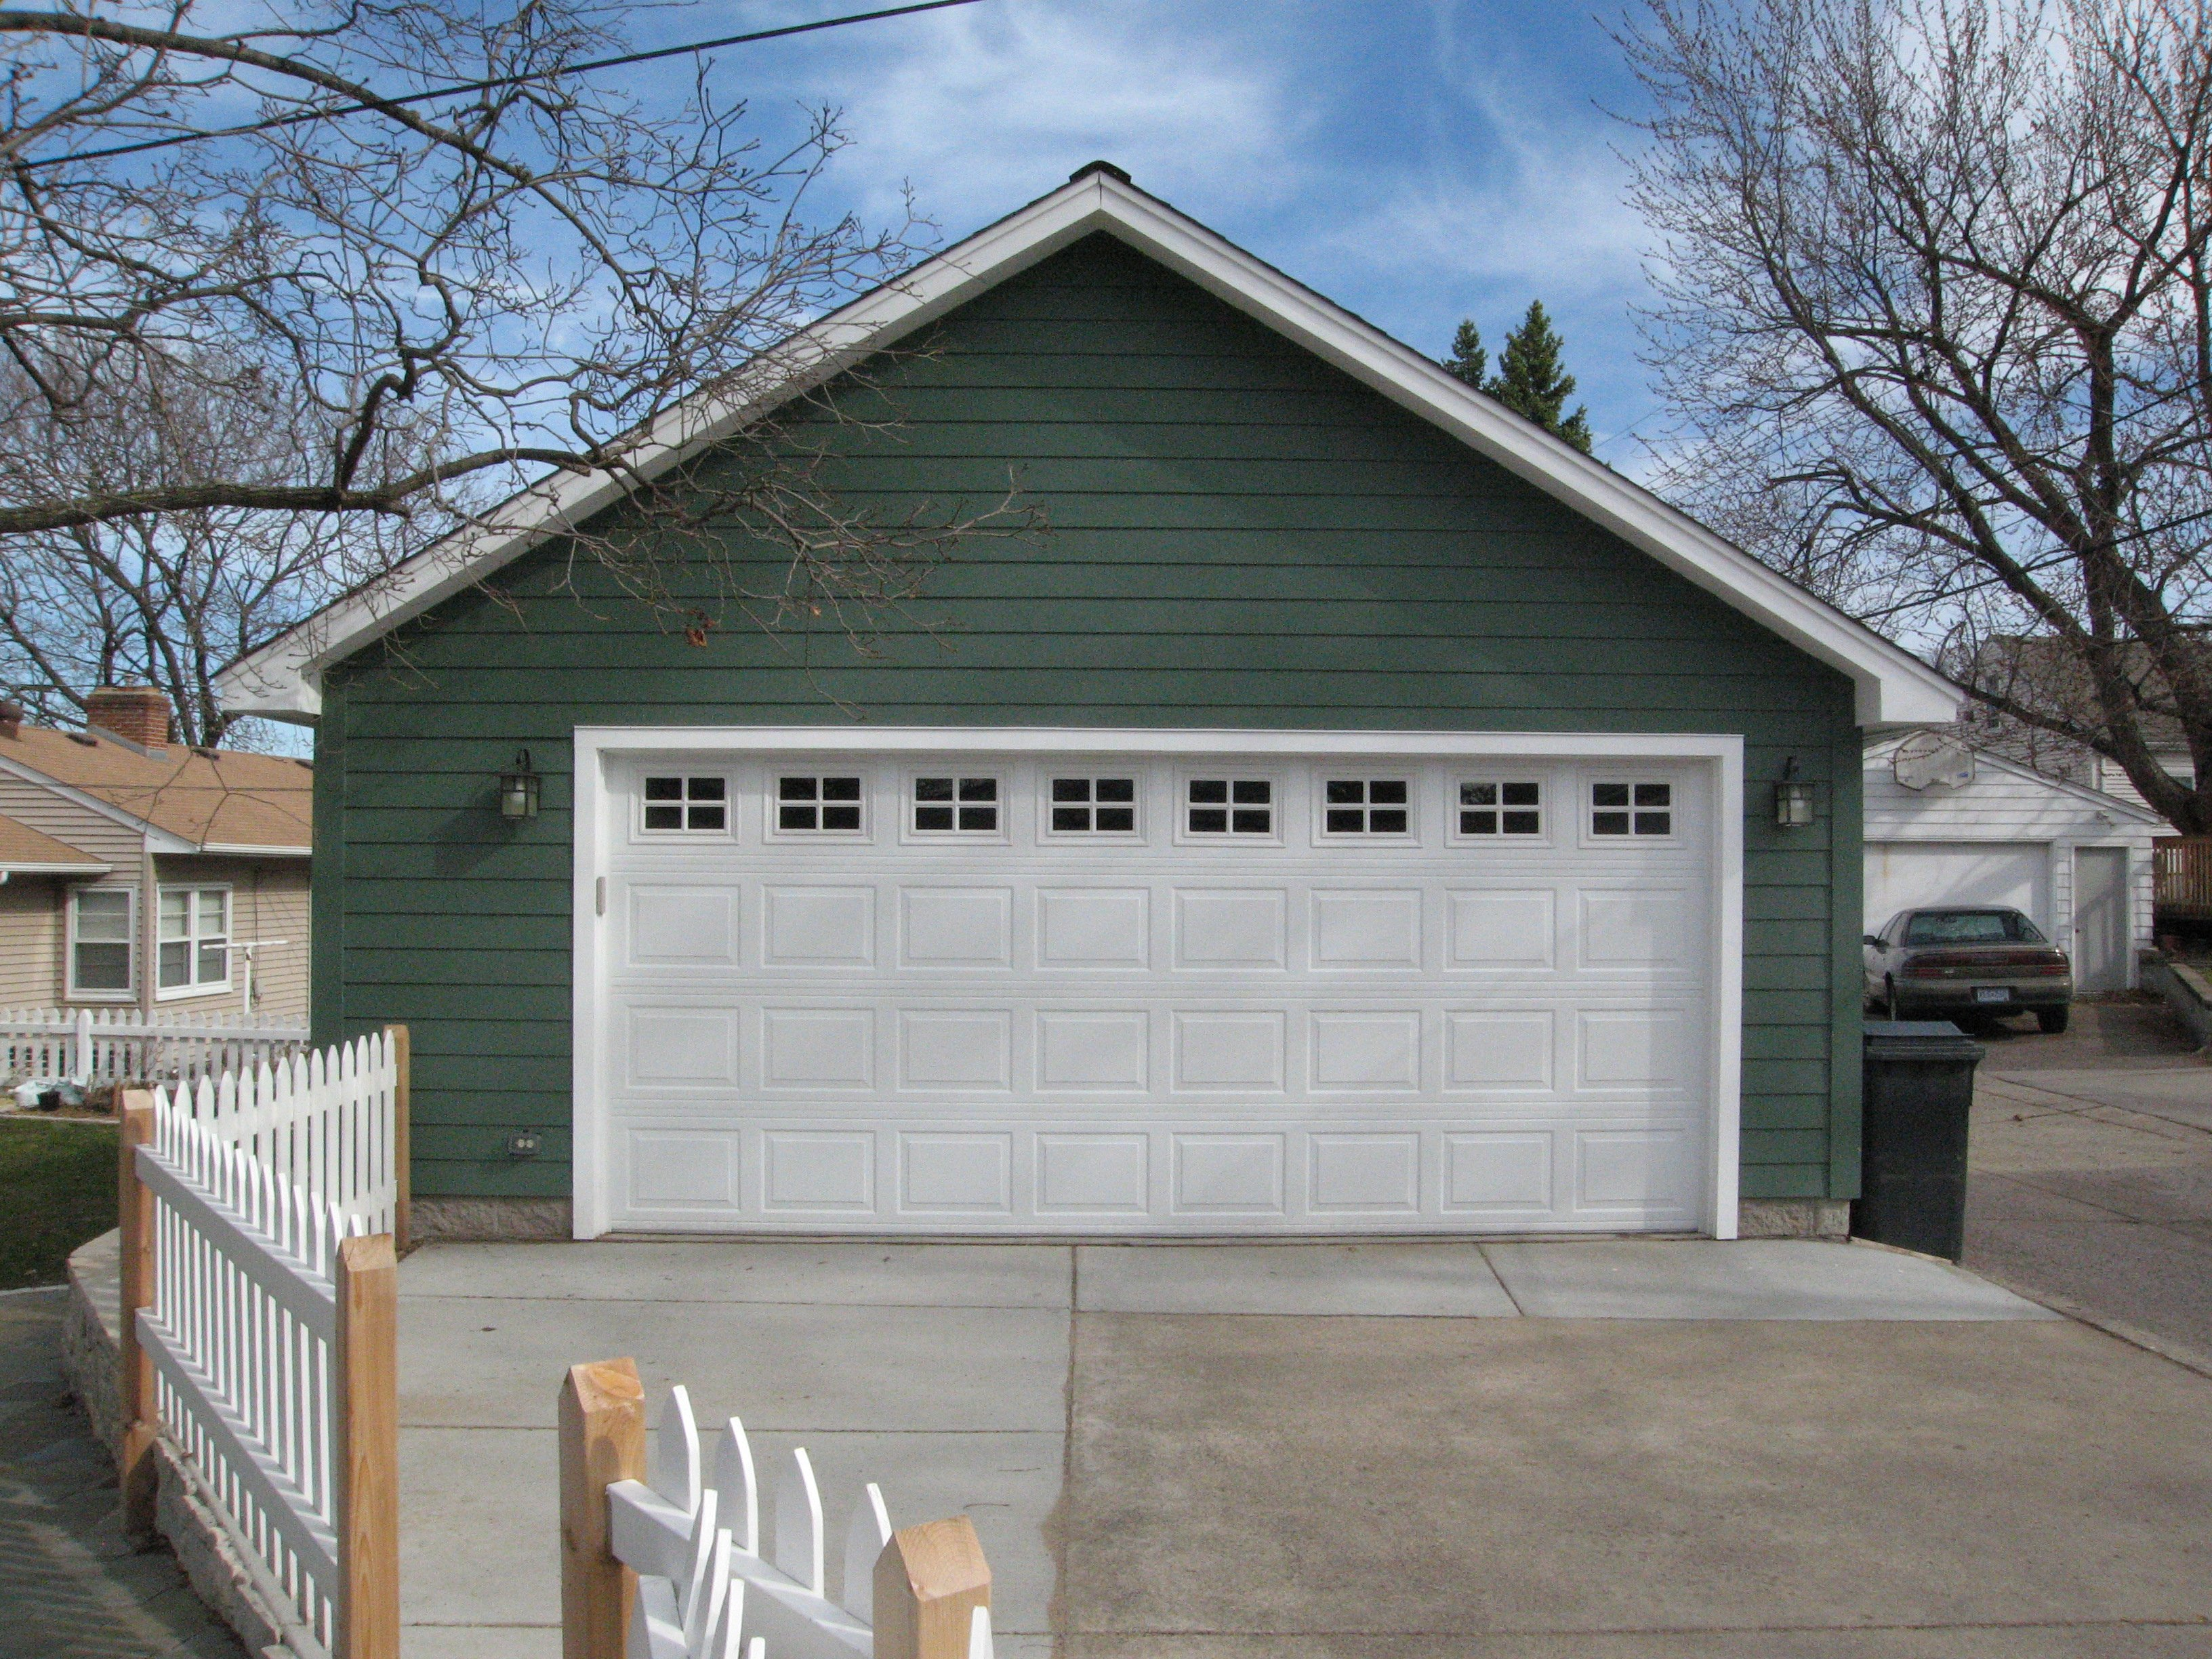 Free storage truss garage plans for Garage plans free blueprints